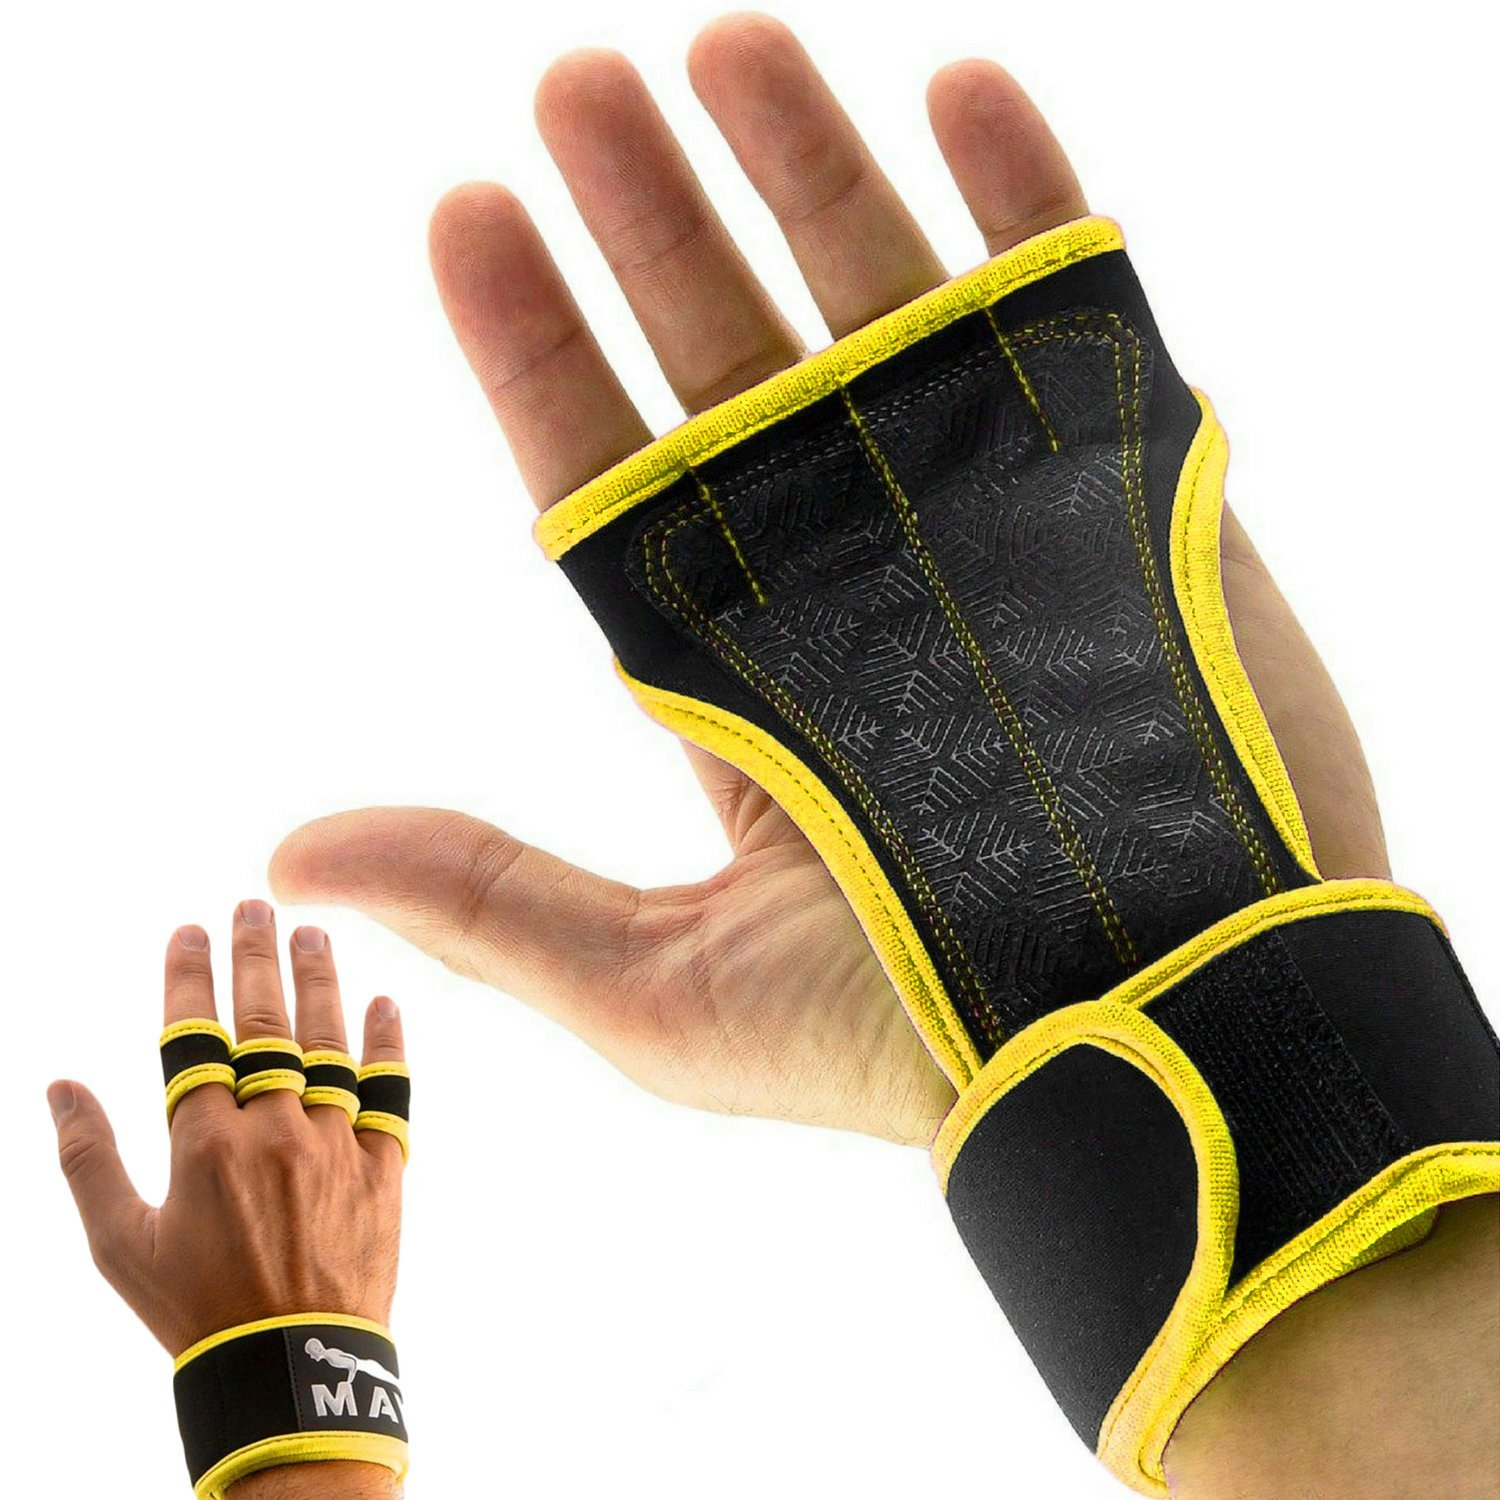 Mava Sports Cross Training Gloves with Wrist Support